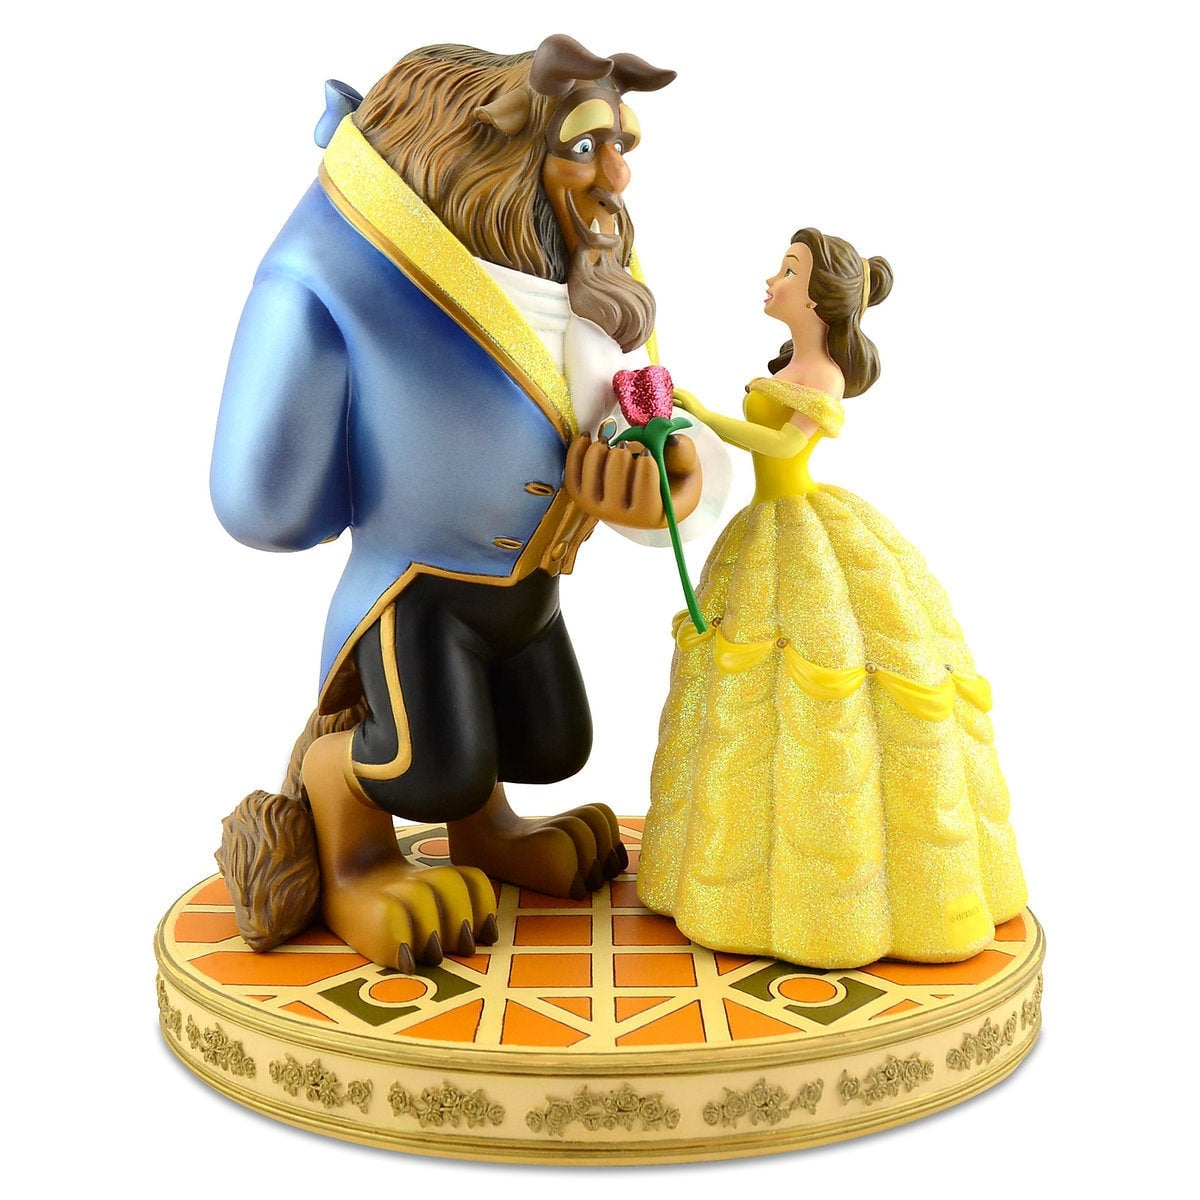 Disney Store Beauty and the Beast Sculpted Figure